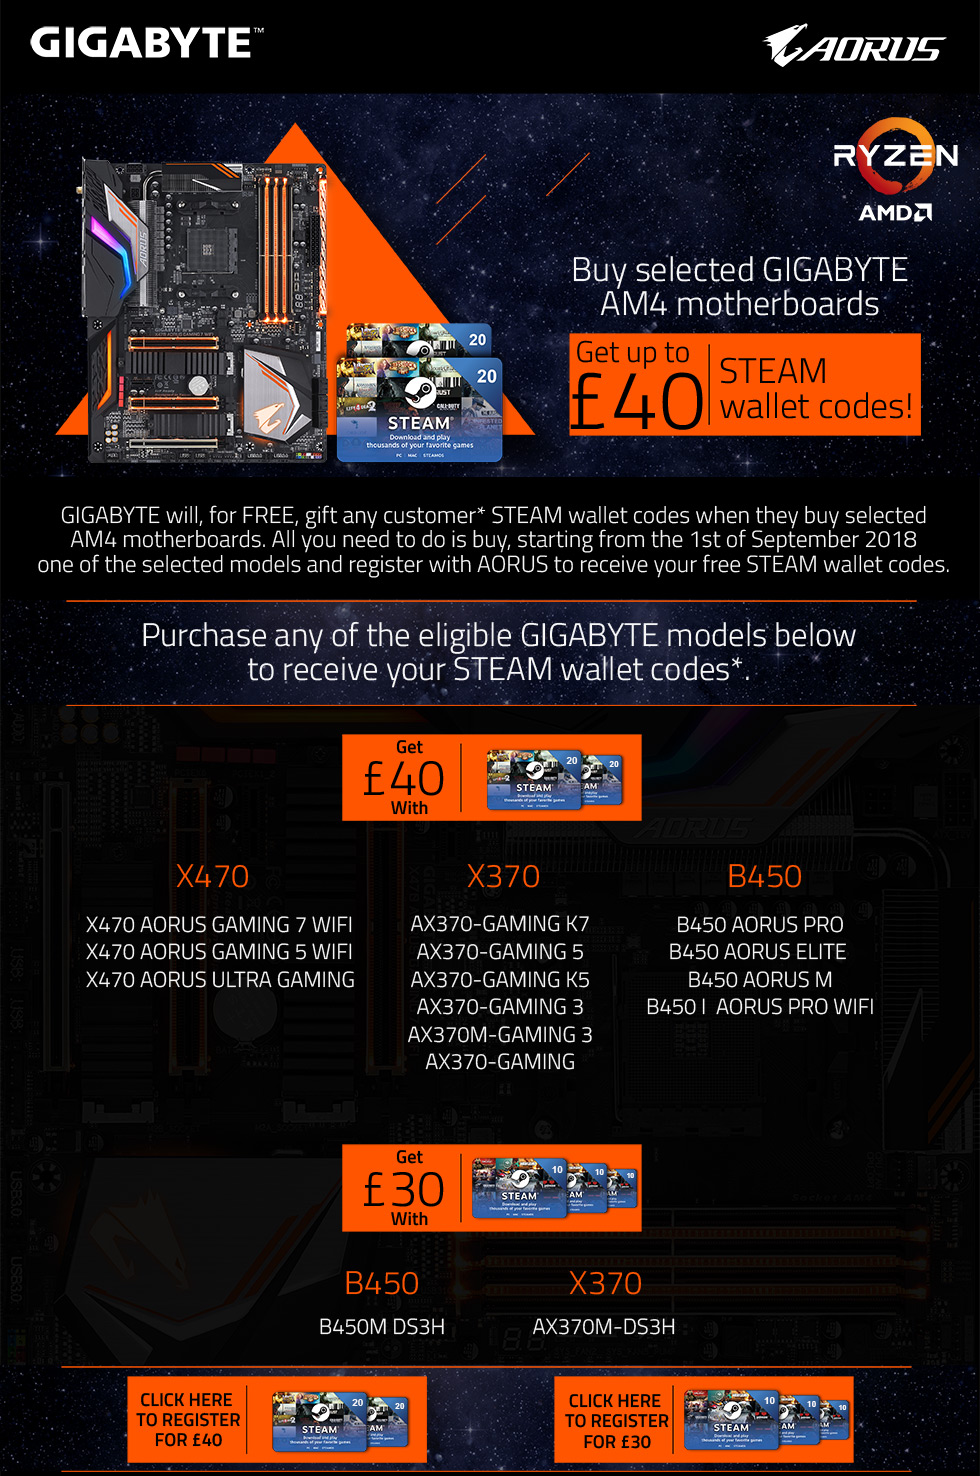 GIGABYTE Steam Promo